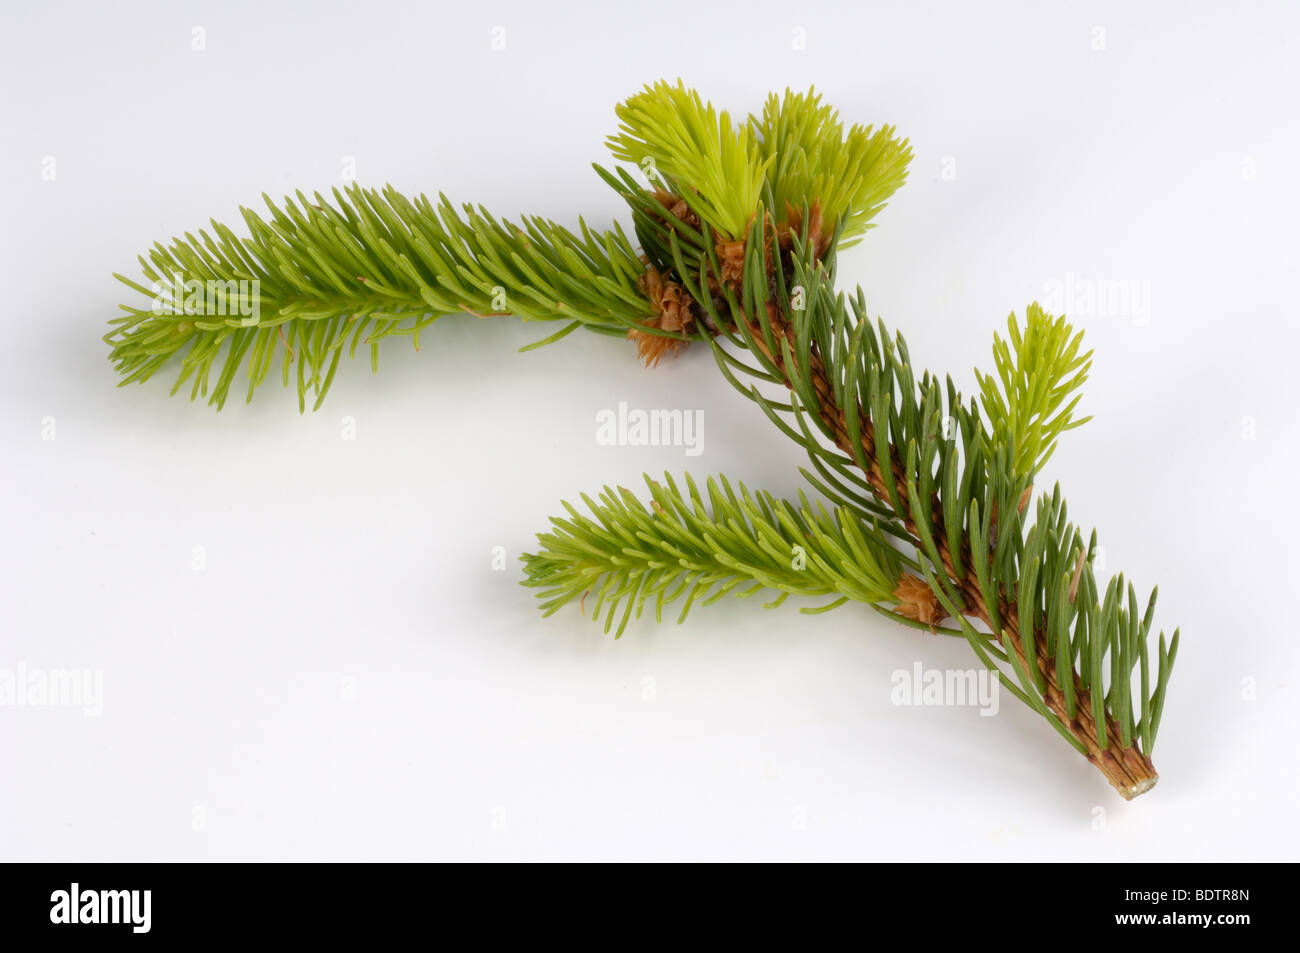 Norway Spruce (Picea abies) - Stock Image